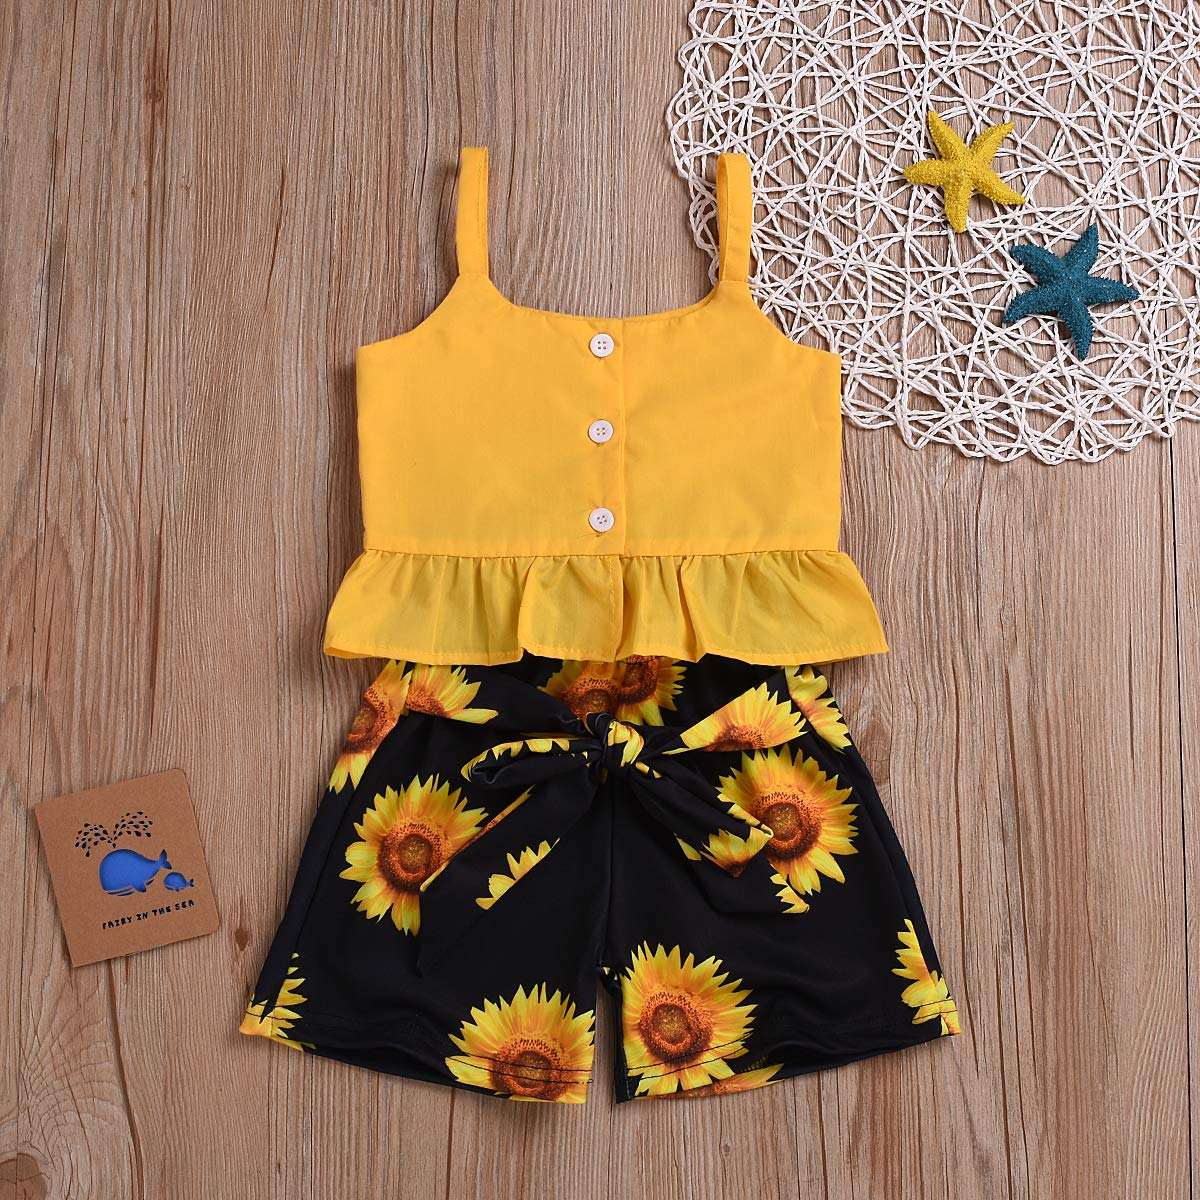 Floral Short Ruffle Off The Shoulder Summer Clothes 2Pcs Toddler Baby Girls Kids Outfit Sets Floral Tops with Strap